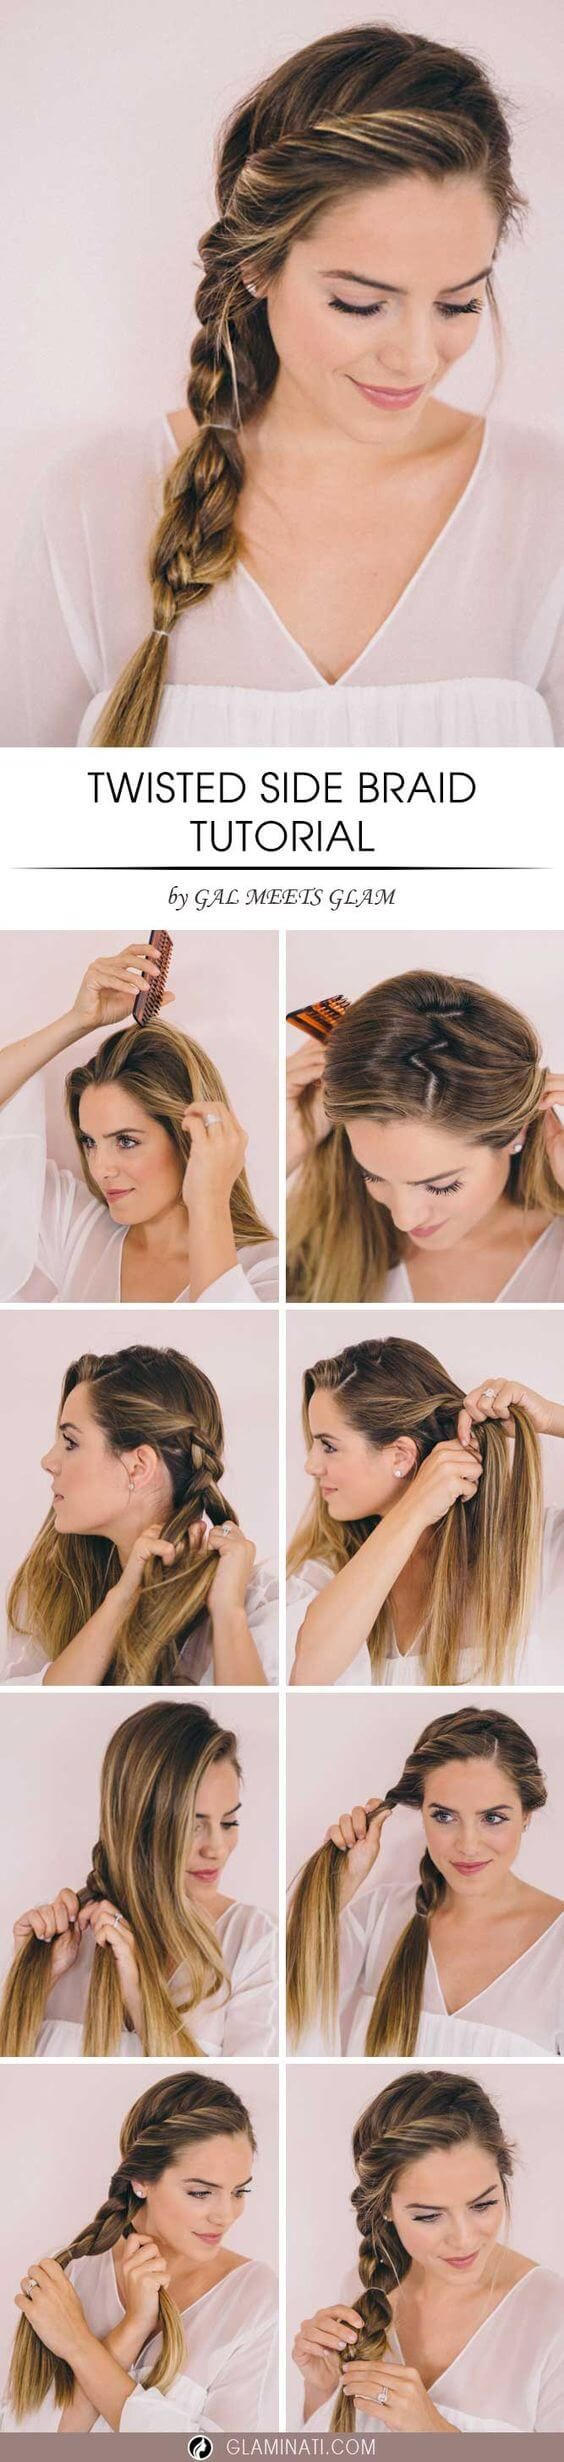 Time To Shine In Medium Length Hairstyles - Our Hairstyles